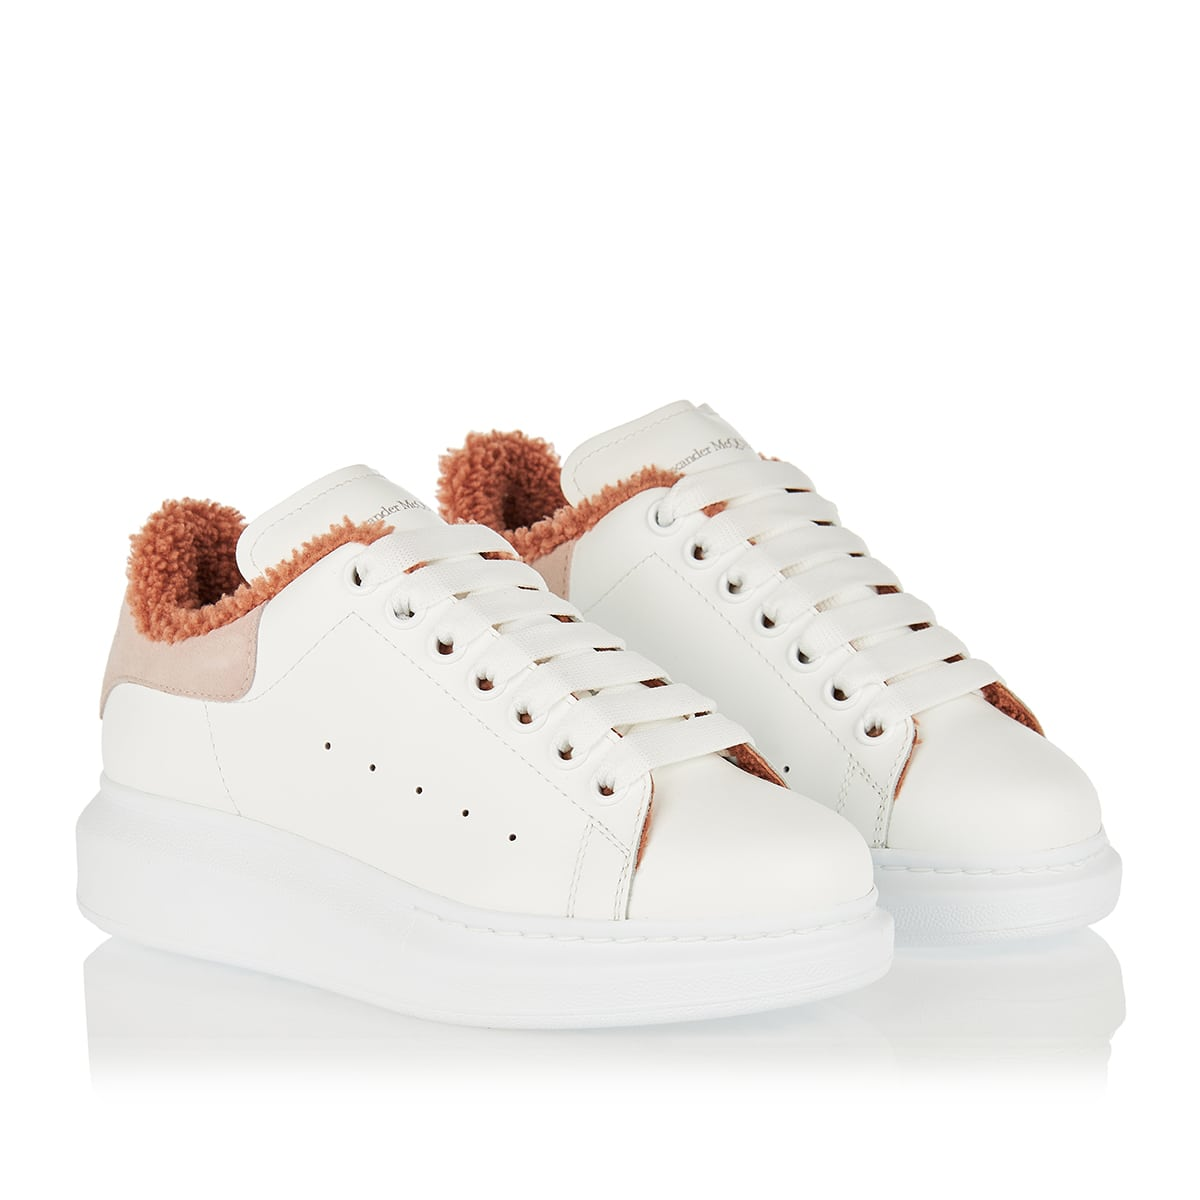 Leather and shearling sneakers